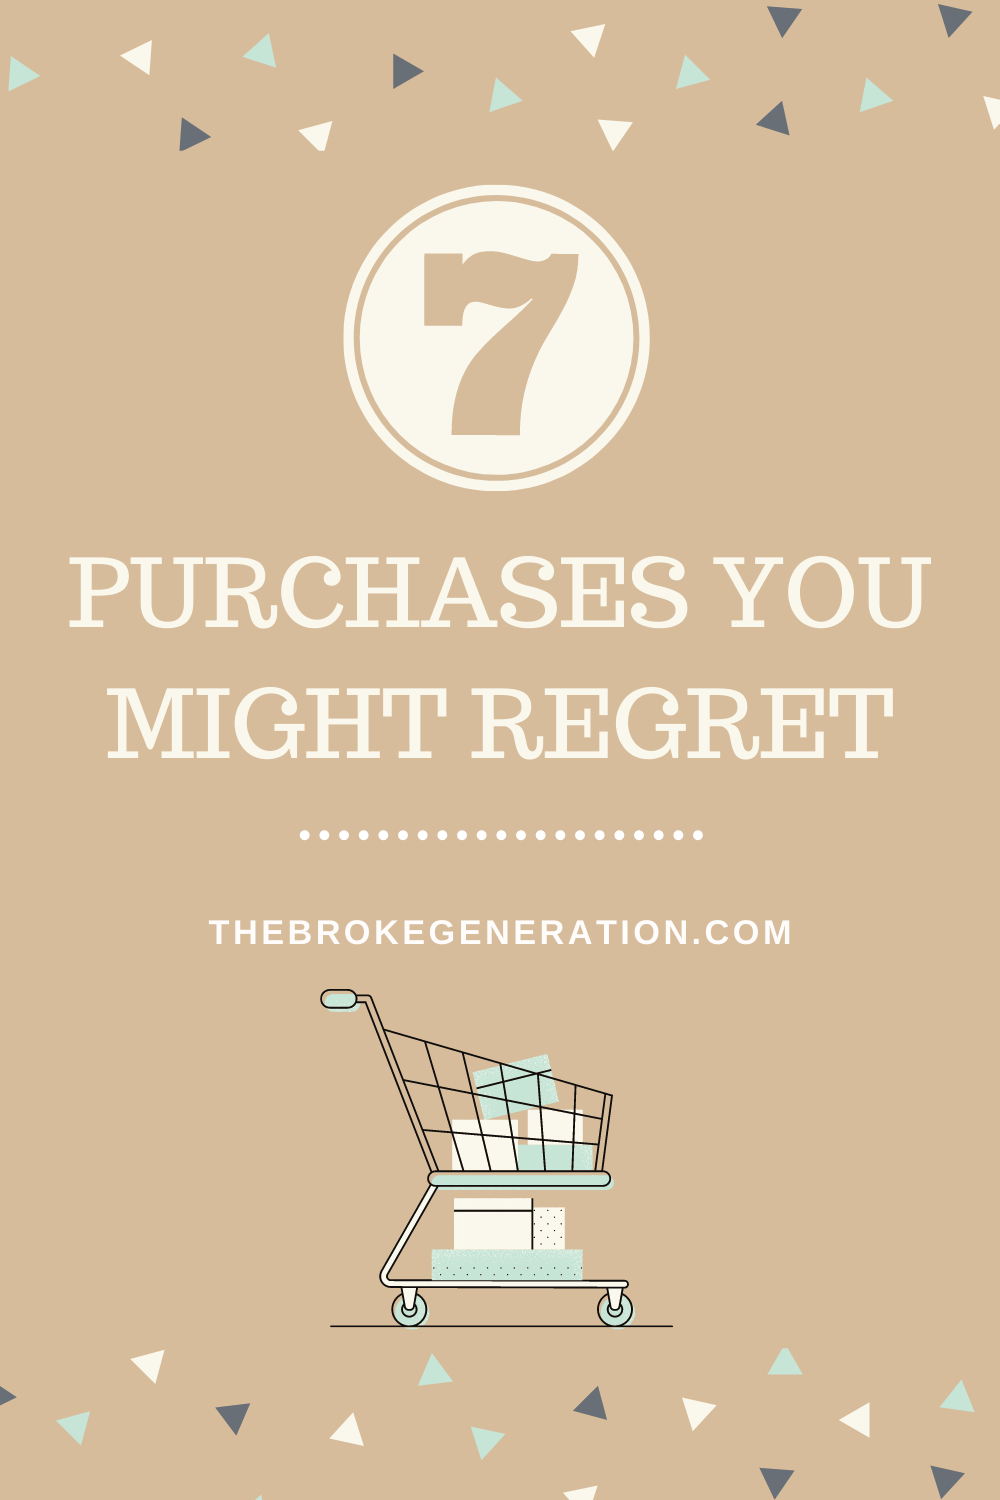 7 Purchases You Might Regret